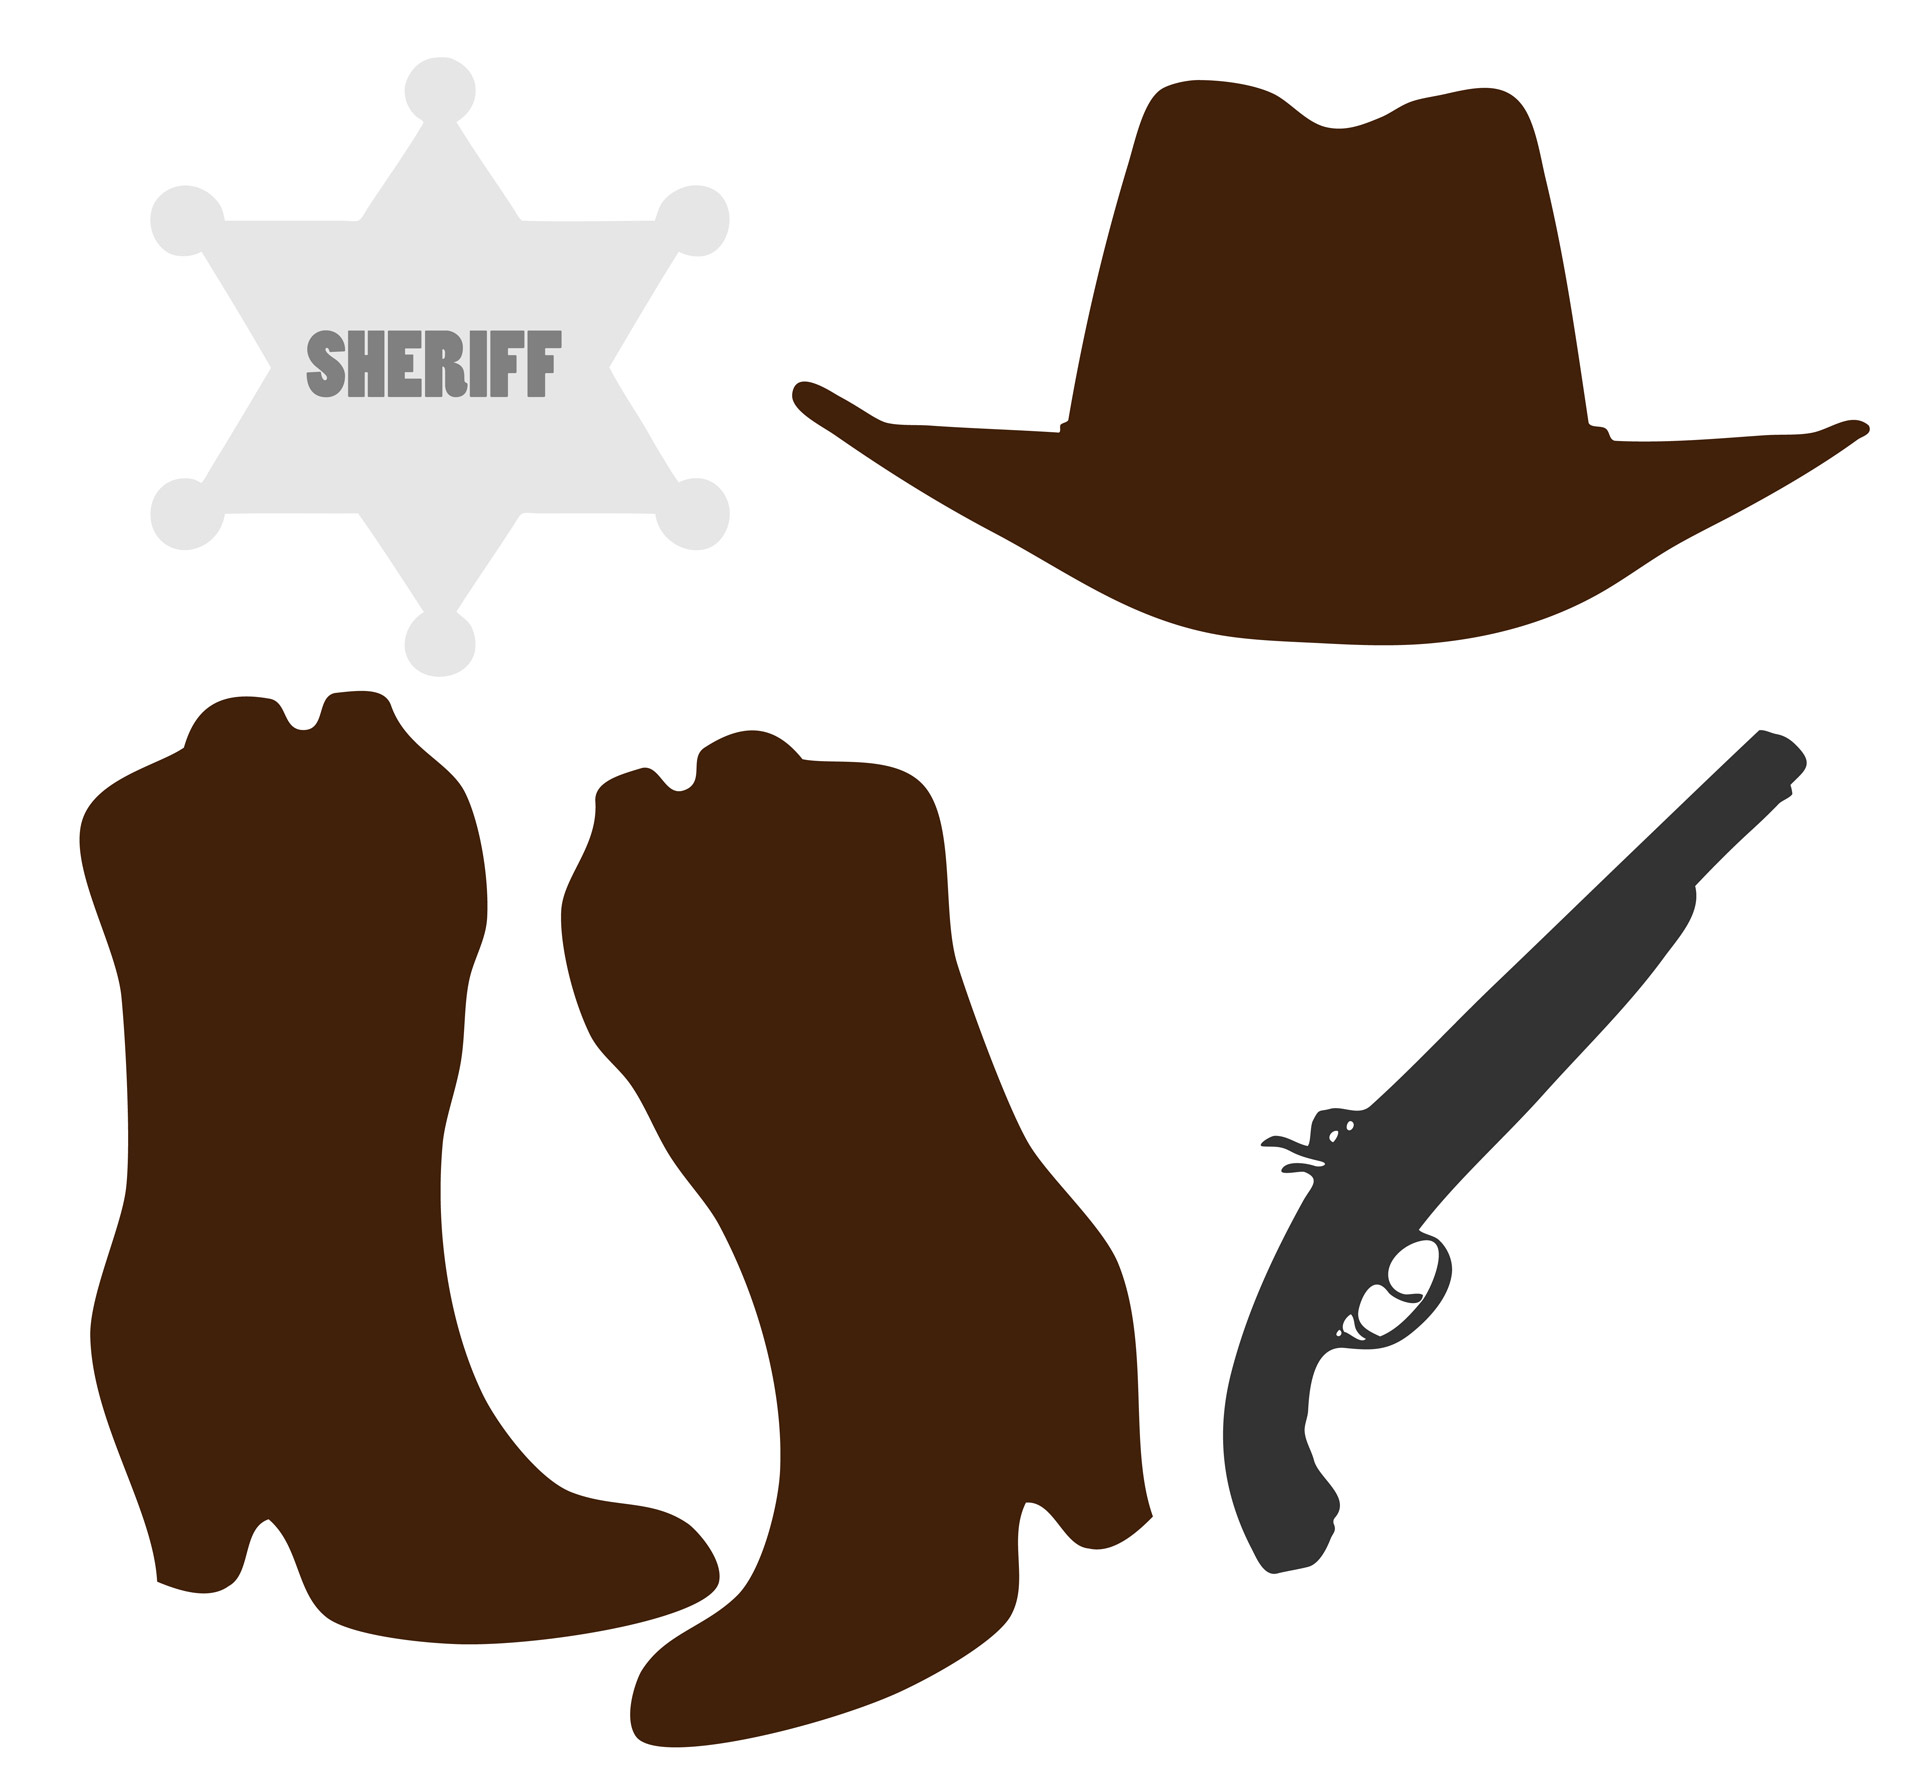 Cowboy Boots Clip Art Free Stock Photo Hd   Public Domain Pictures